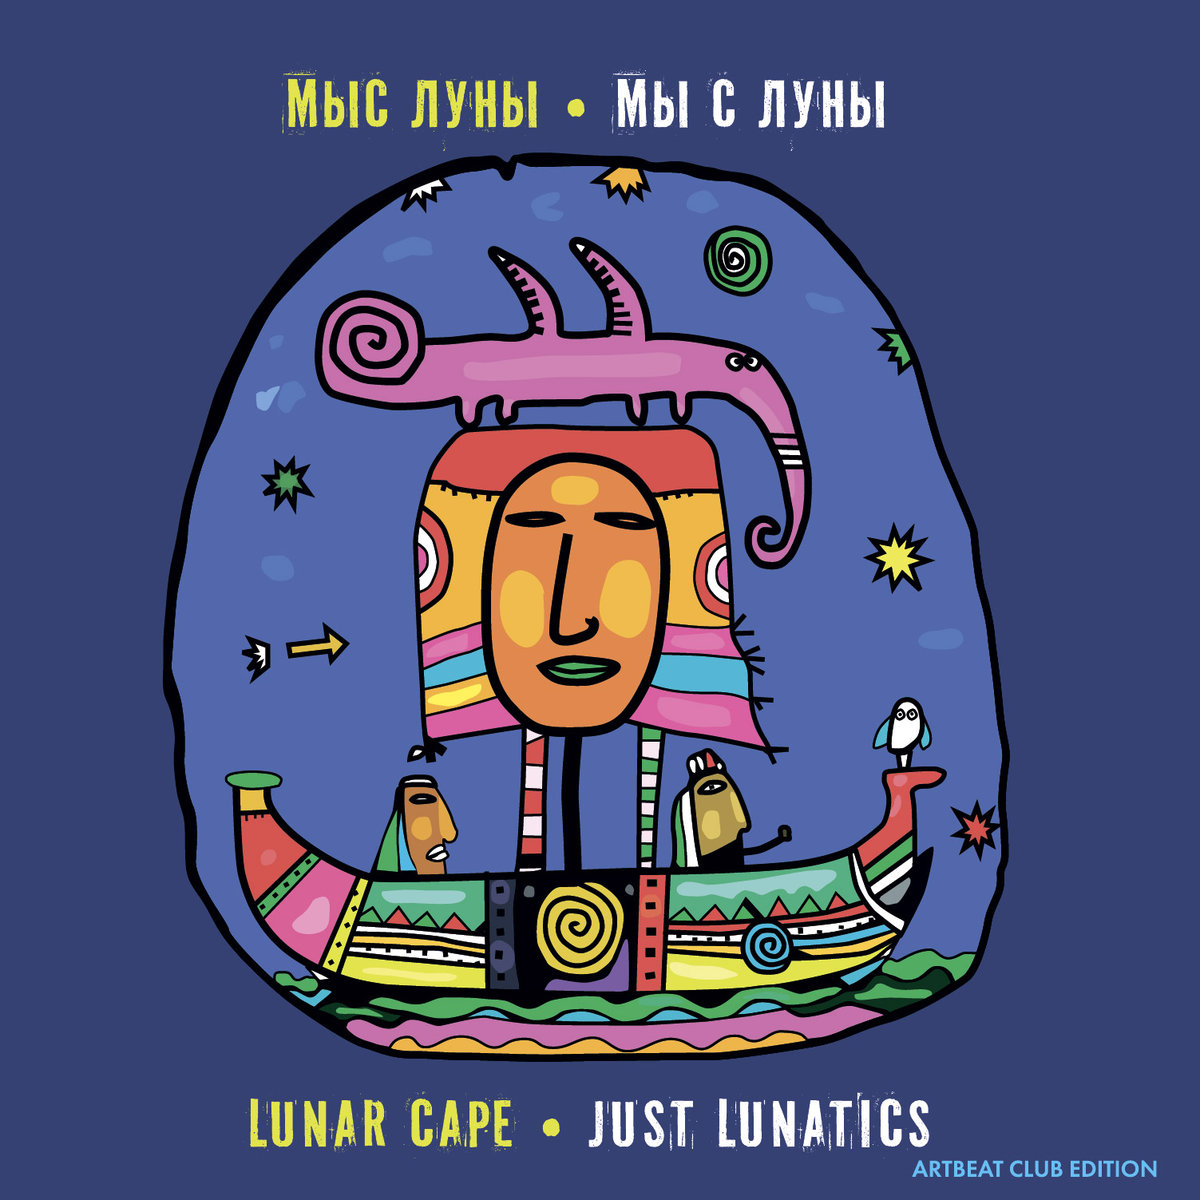 Lunar Cape - The Realm of Sleep @ 'Just Lunatics' album (jazz fusion, soundtrack)